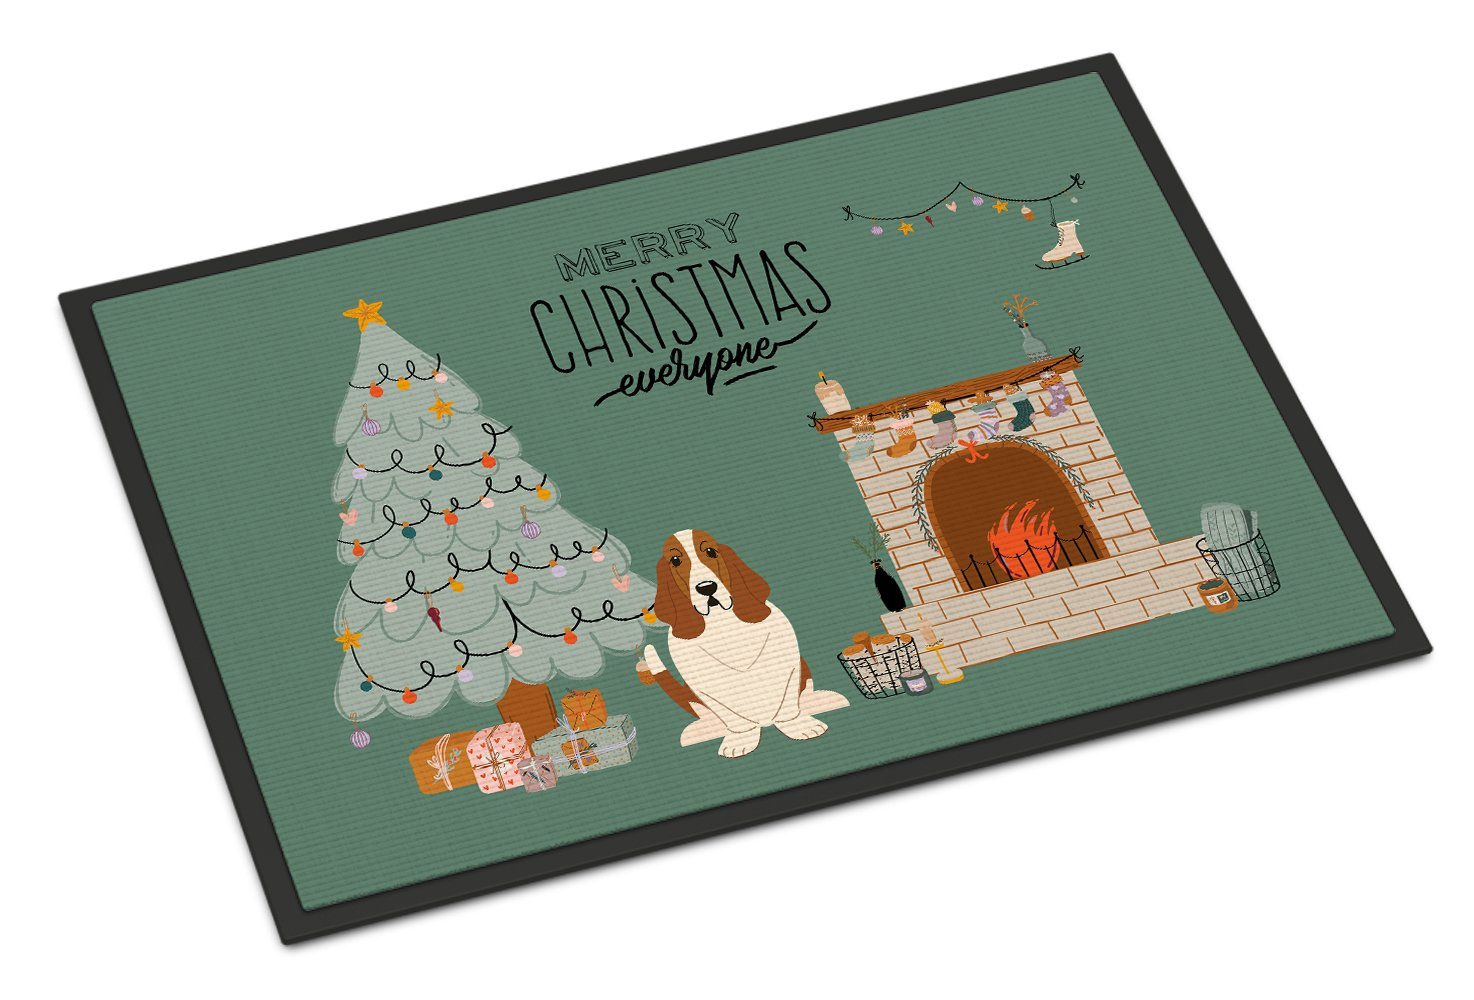 Basset Hound Christmas Everyone Indoor or Outdoor Mat 24x36 CK7584JMAT by Caroline's Treasures